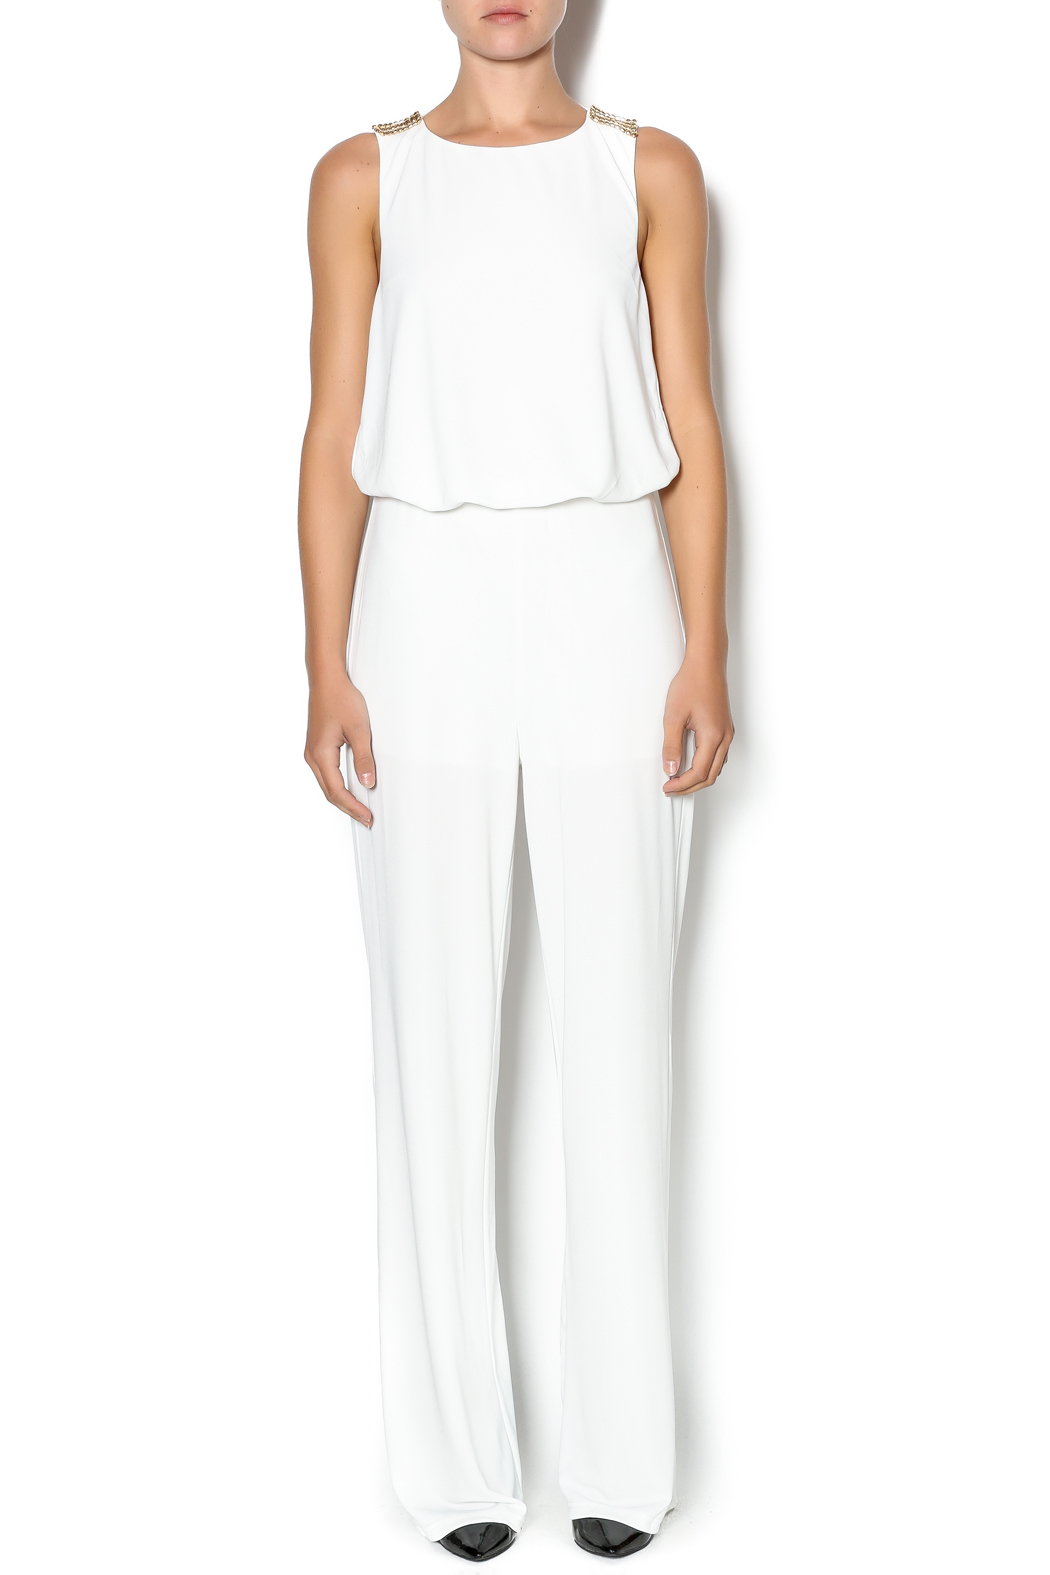 White And Gold Jumpsuit From Georgia By Opulence Nail Bar Boutique